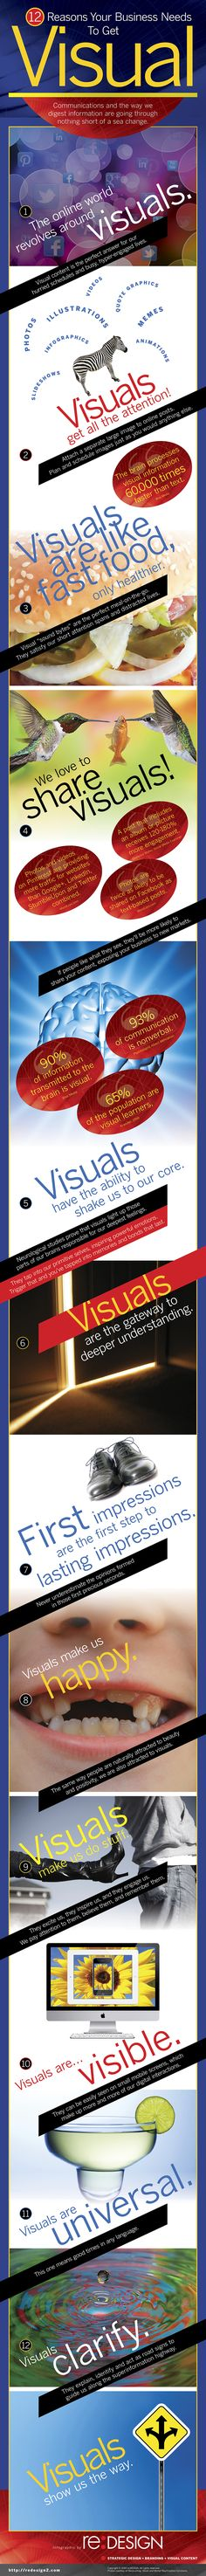 12 Reasons Your Business Needs to Get Visual #Infographic http://www.redesign2.com/1/post/2014/05/infographic-12-reasons-your-business-needs-to-get-visual.html